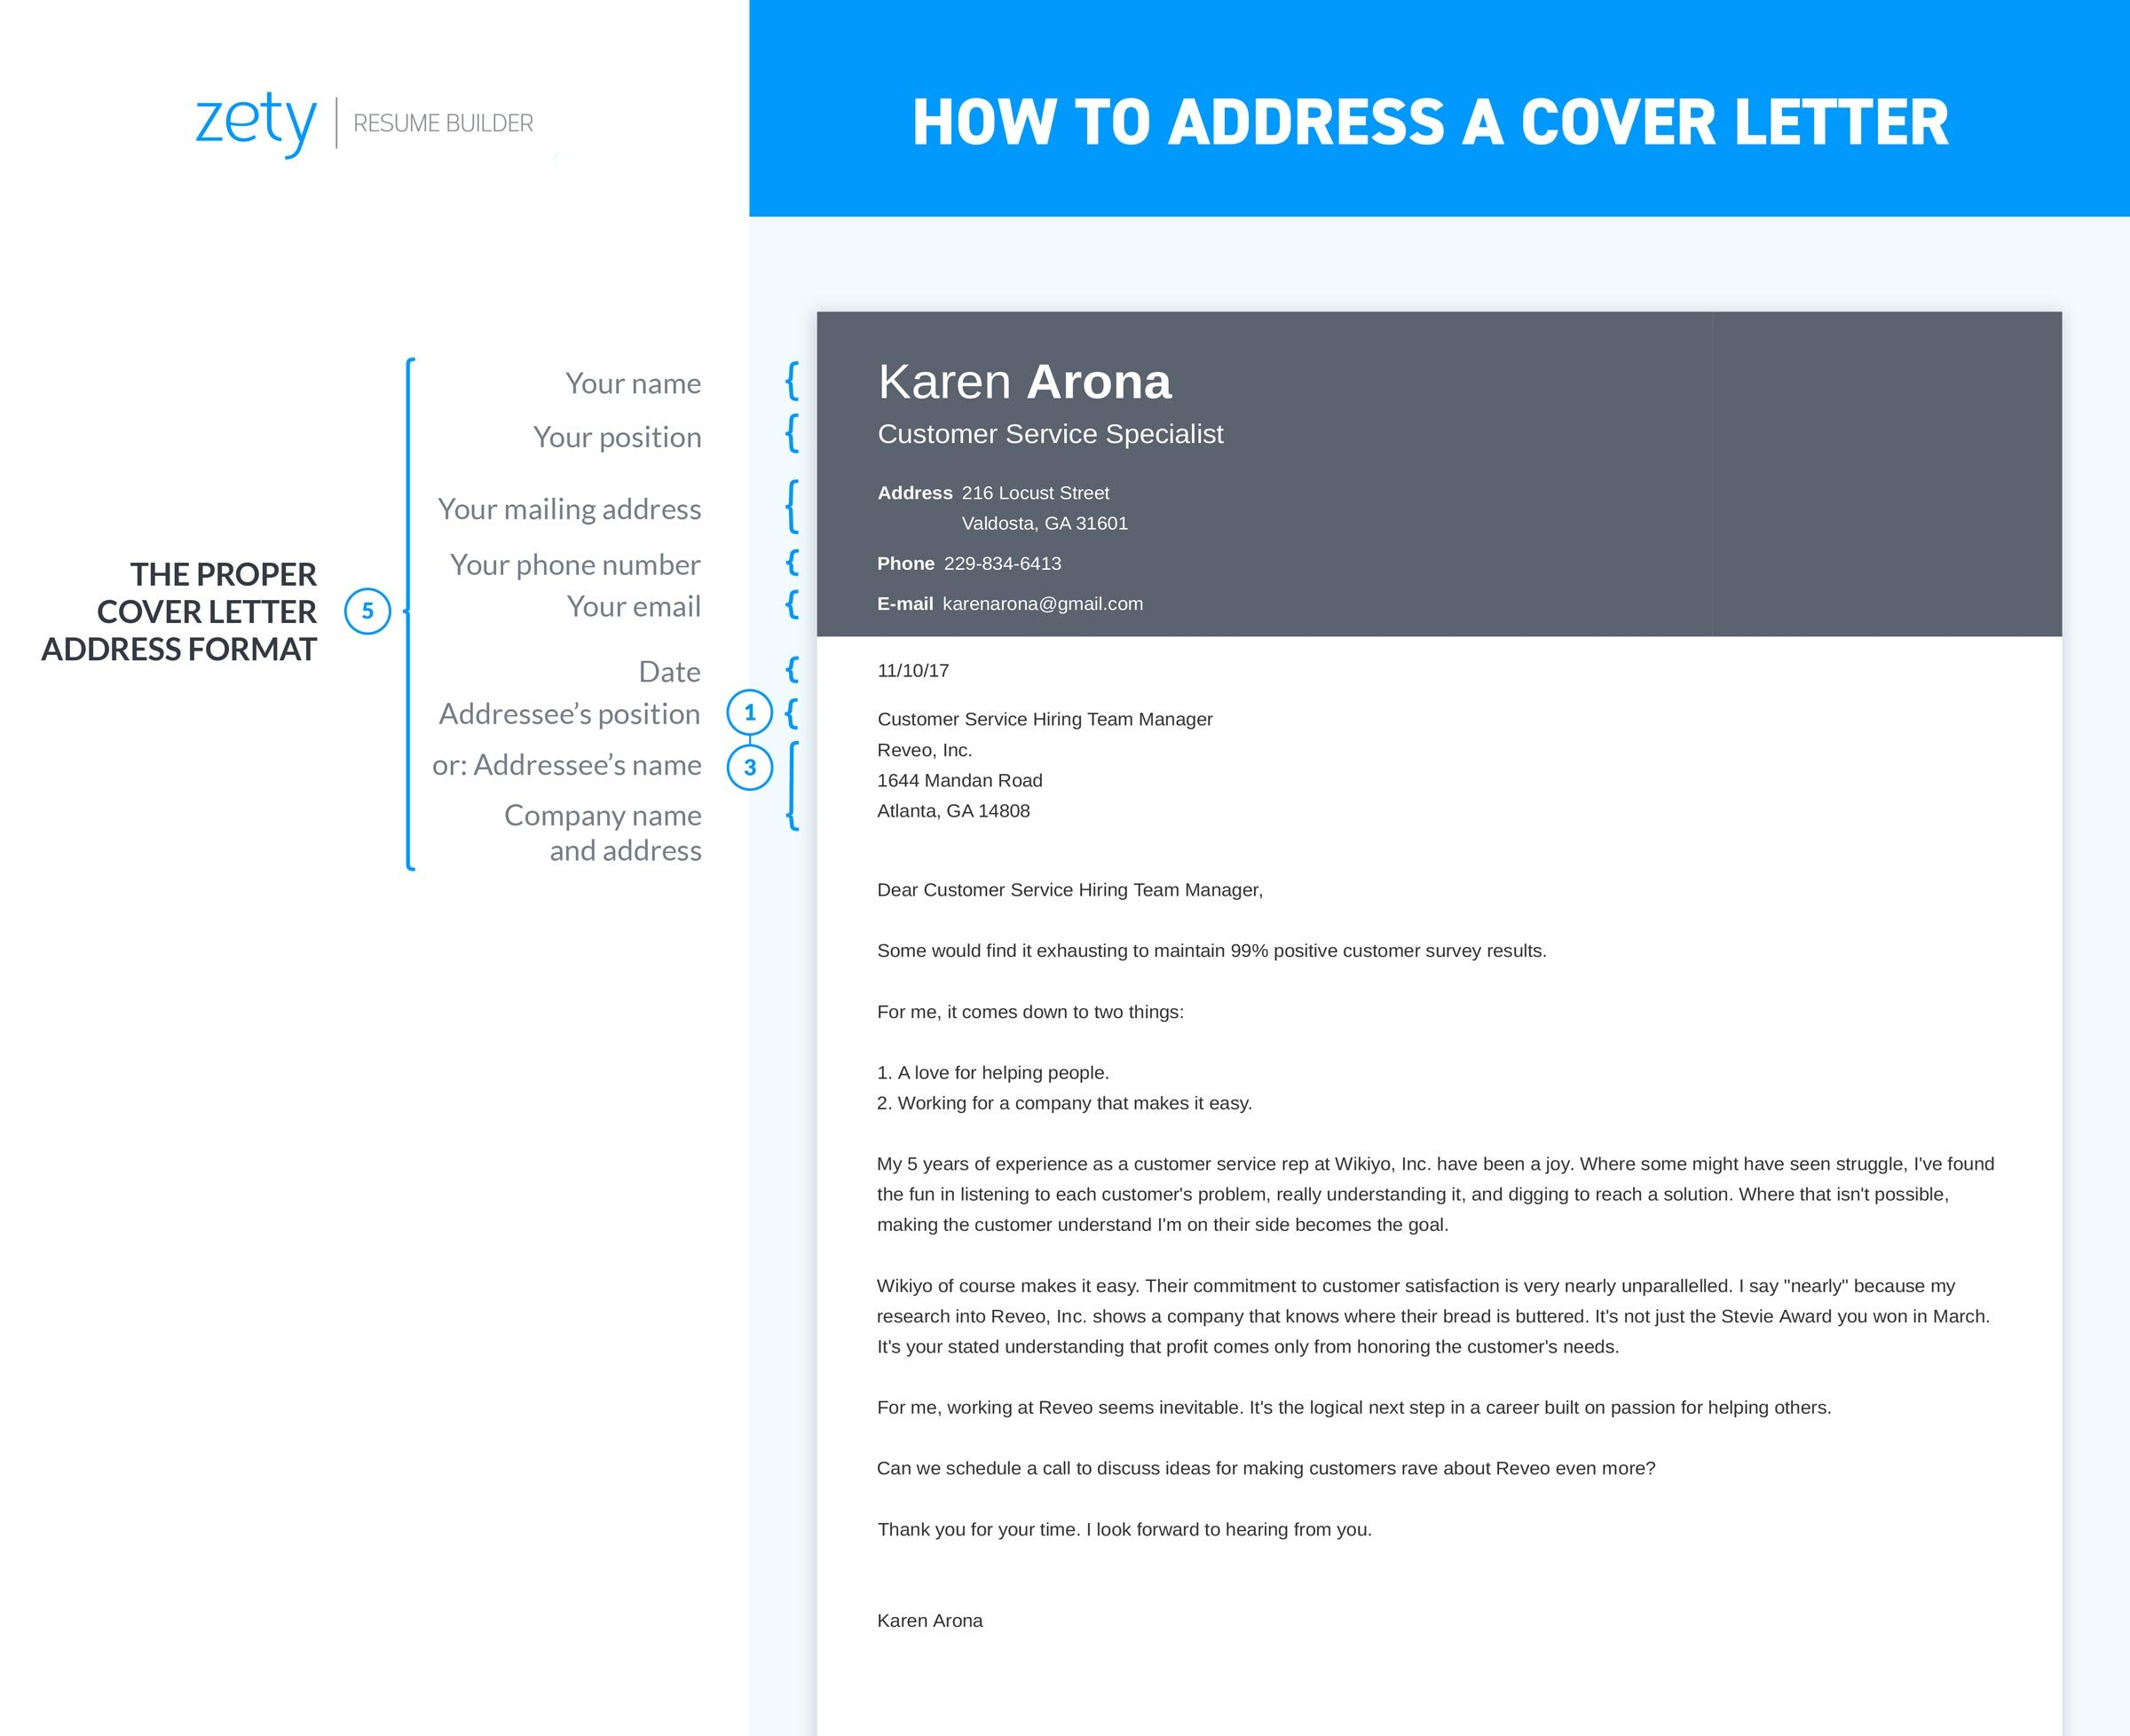 addressing a cover letter to a woman